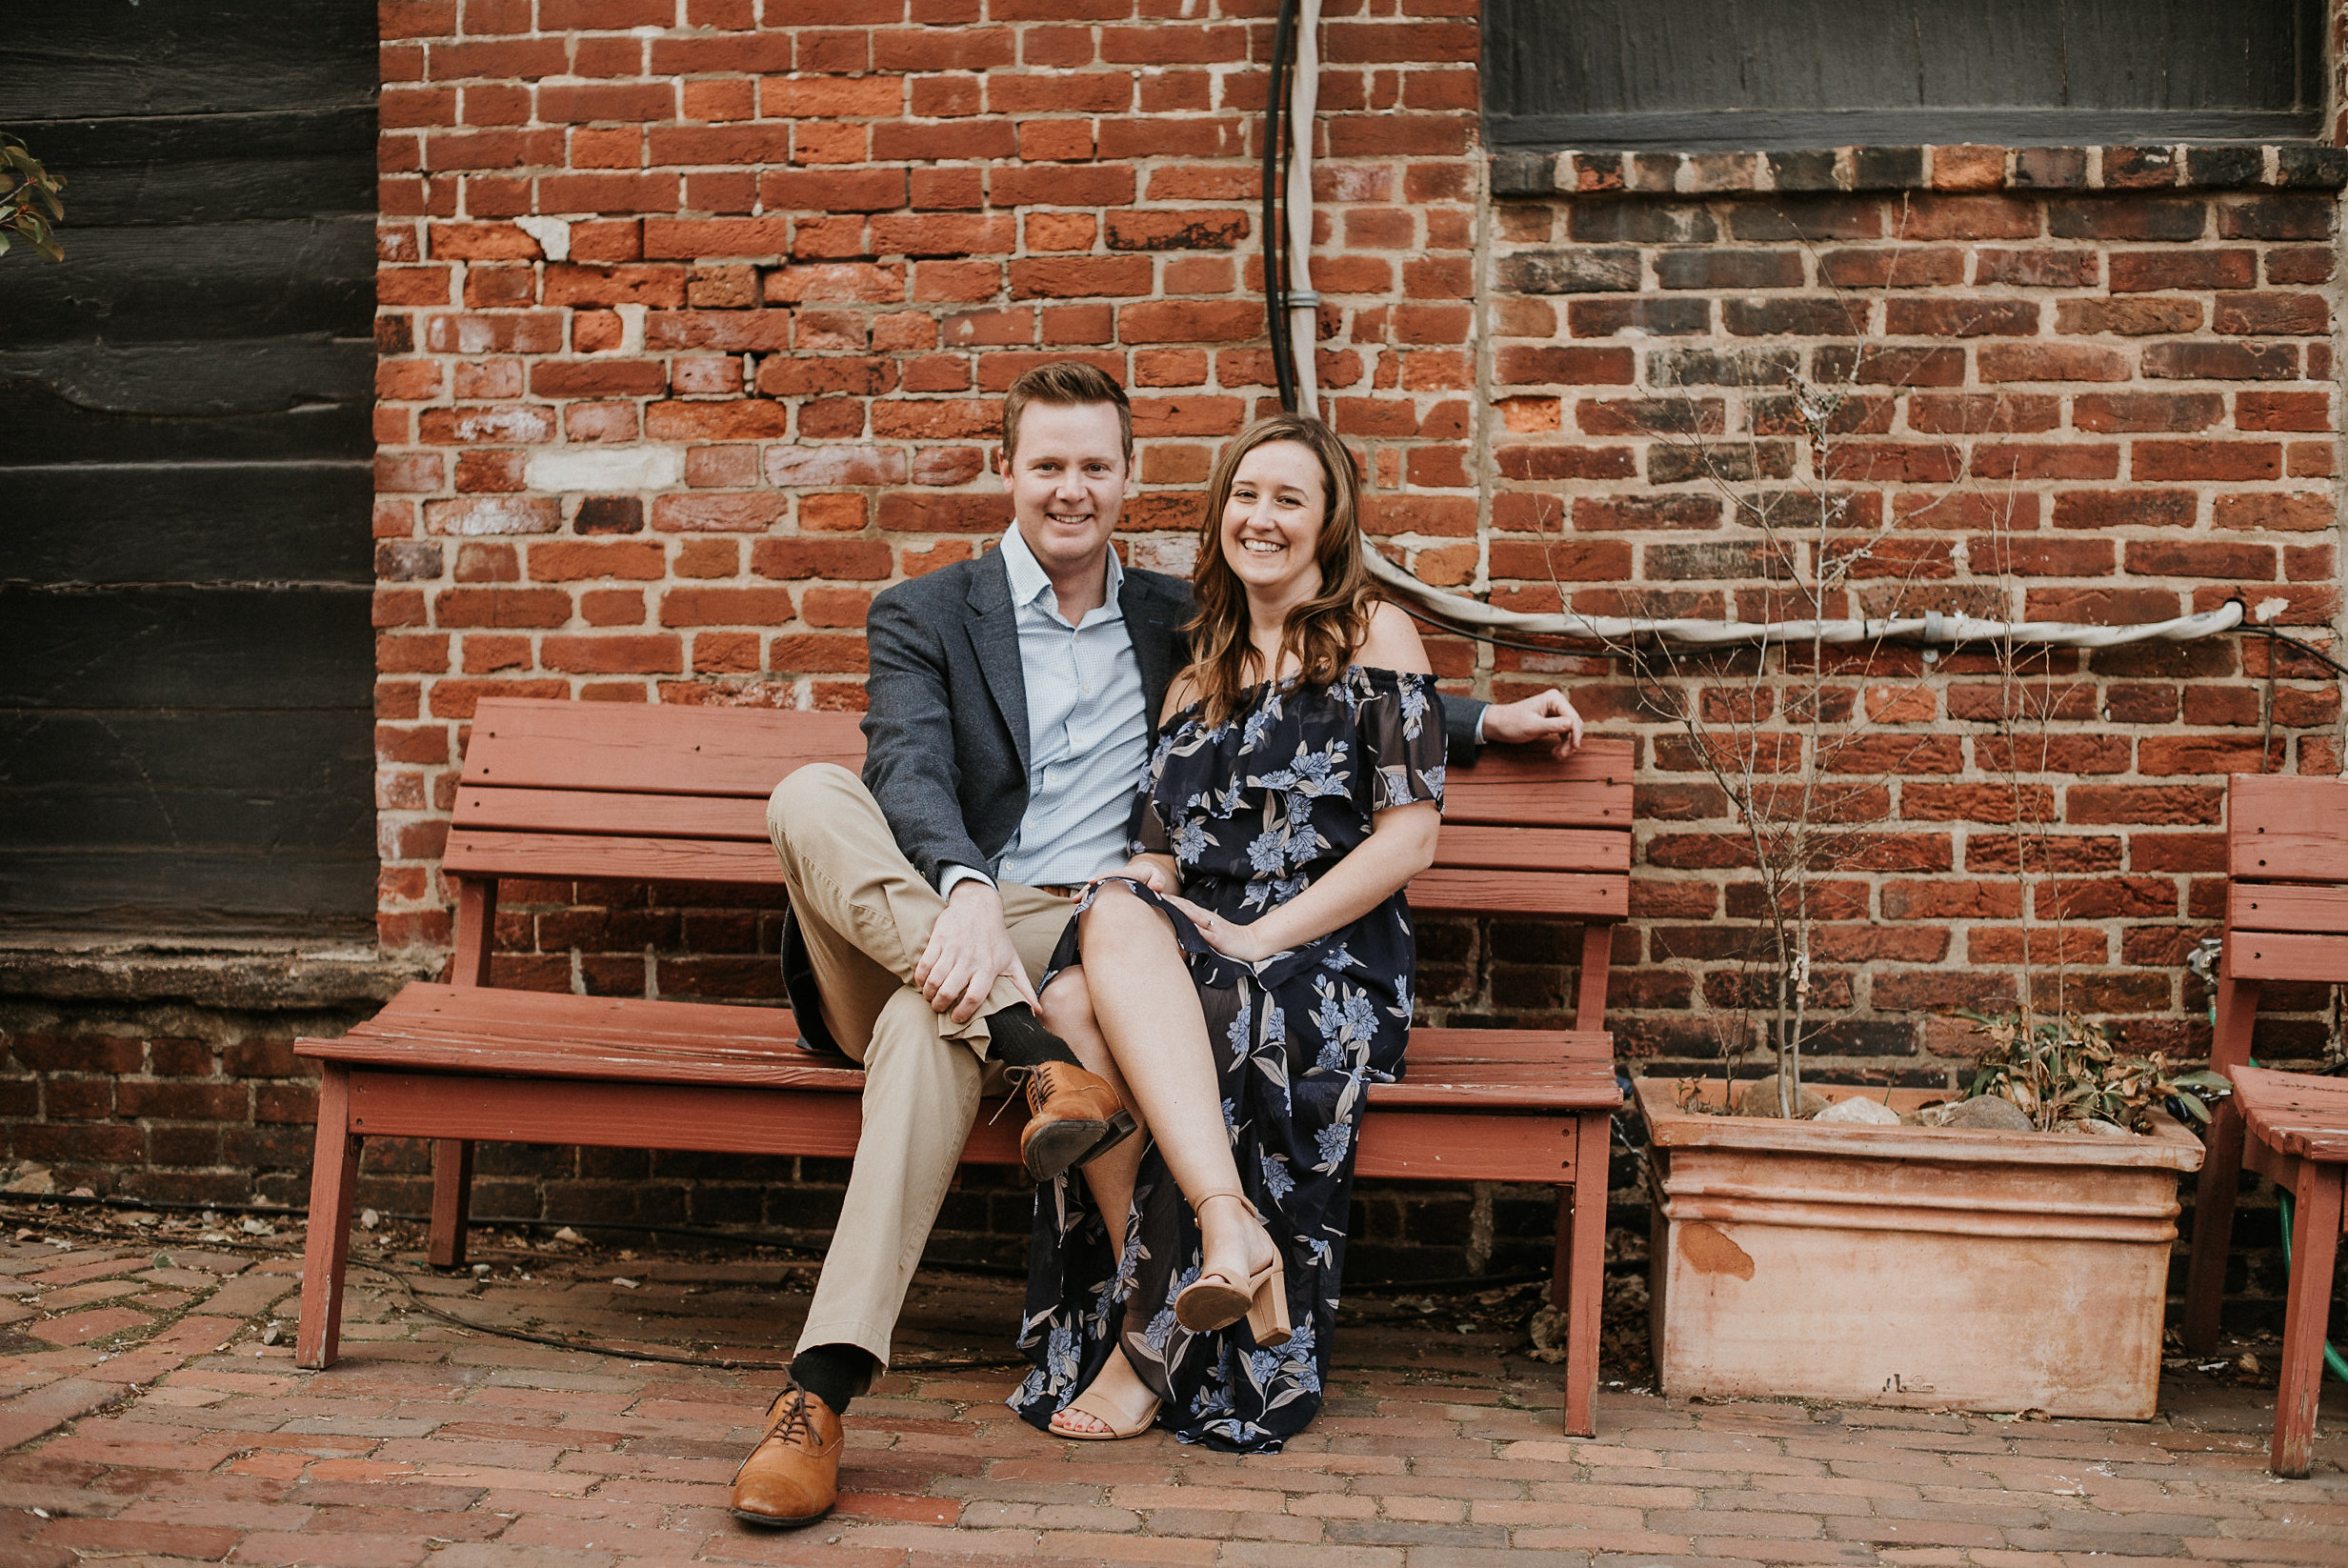 Couple sitting on red bench